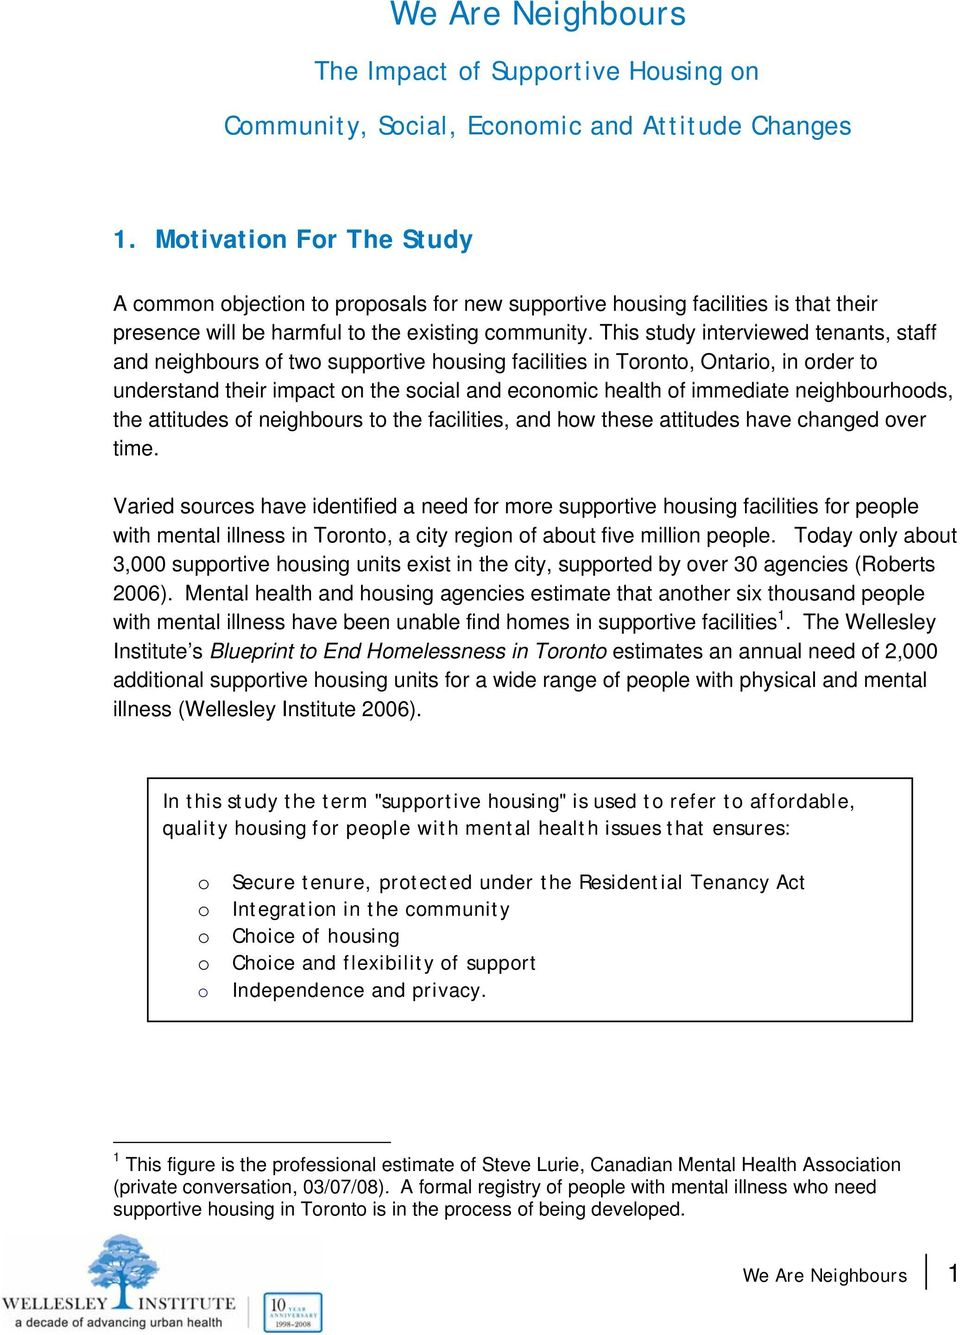 This study interviewed tenants, staff and neighbours of two supportive housing facilities in Toronto, Ontario, in order to understand their impact on the social and economic health of immediate